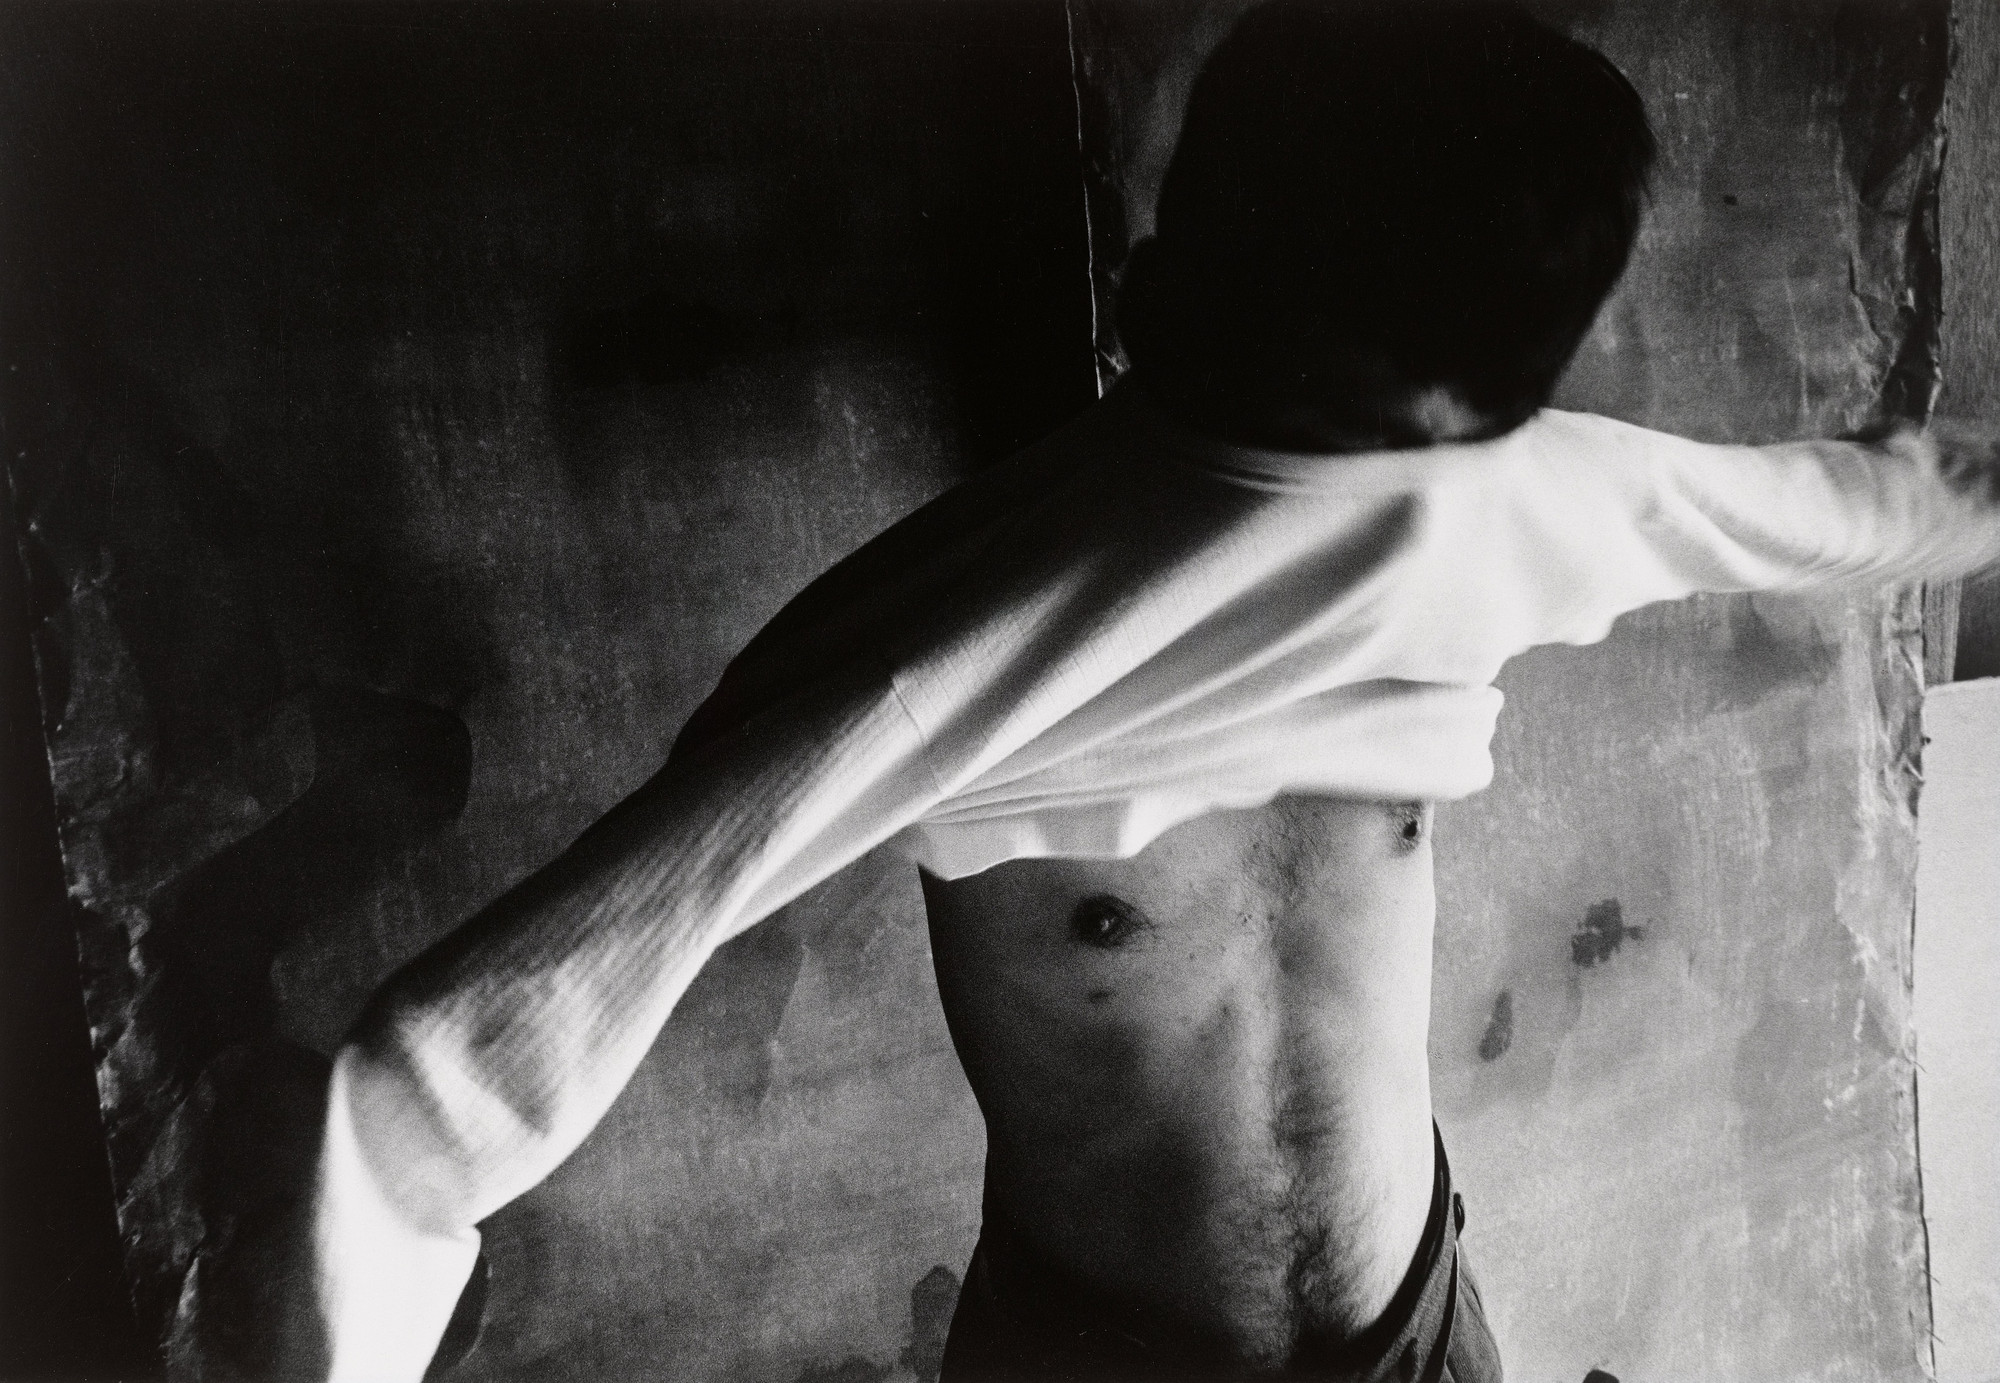 "Shomei Tomatsu (Japanese, 1930-2012). Tomitarō Shimotani, Nagasaki, from the series Hibakusha. 1961. Gelatin silver print, 13 × 18 3⁄4"" (33 × 47.6 cm). The Museum of Modern Art, New York. Gift of the artist. © 2015 Shomei Tomatsu"